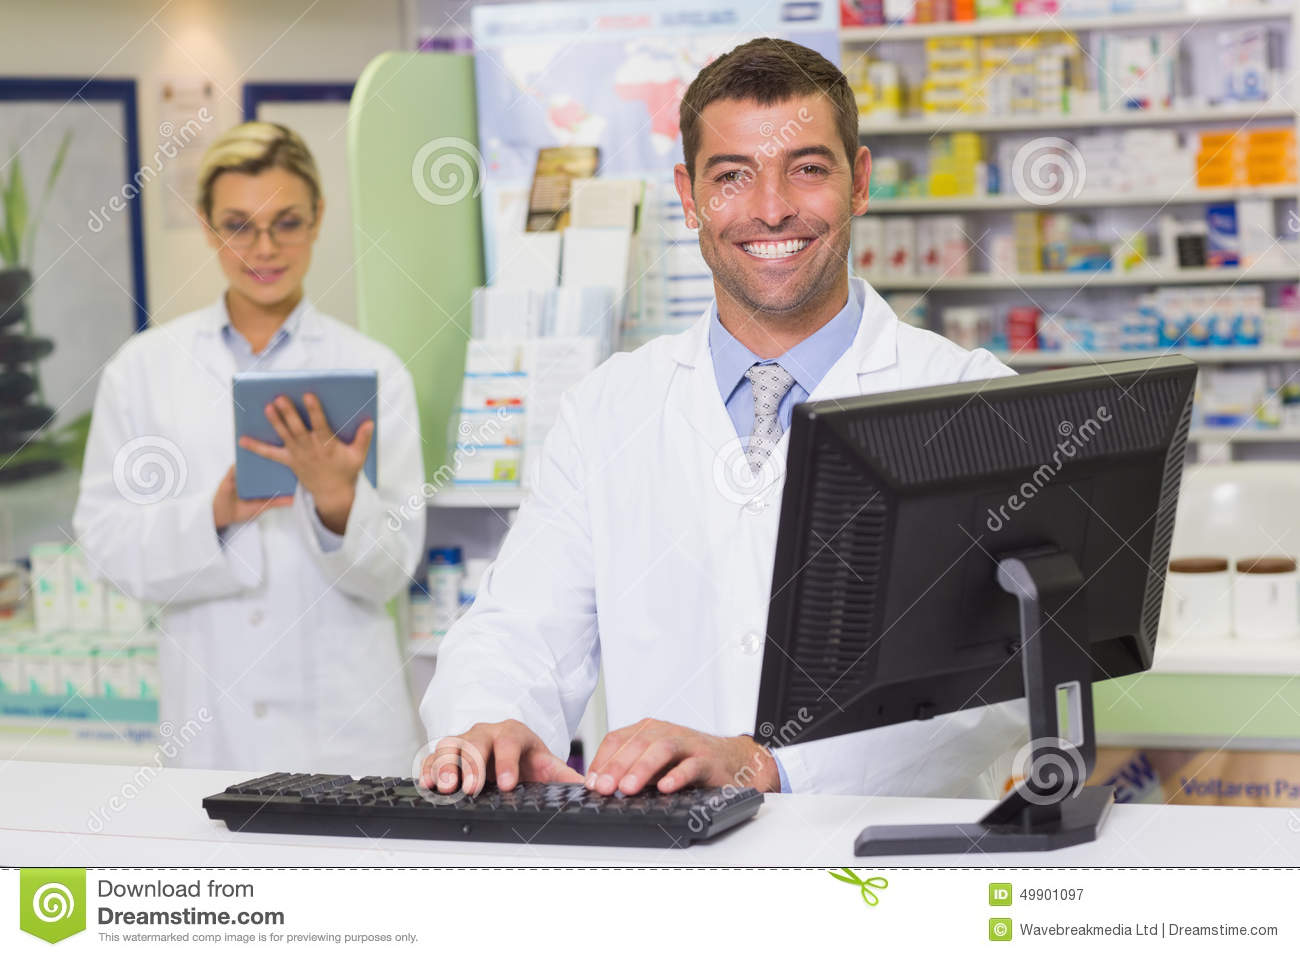 use of computers in pharmacy Pharmacy technicians support the work of pharmacists and other health professionals by performing a variety of pharmacy related functions, including dispensing prescription drugs and other medical devices to patients and instructing on their use.